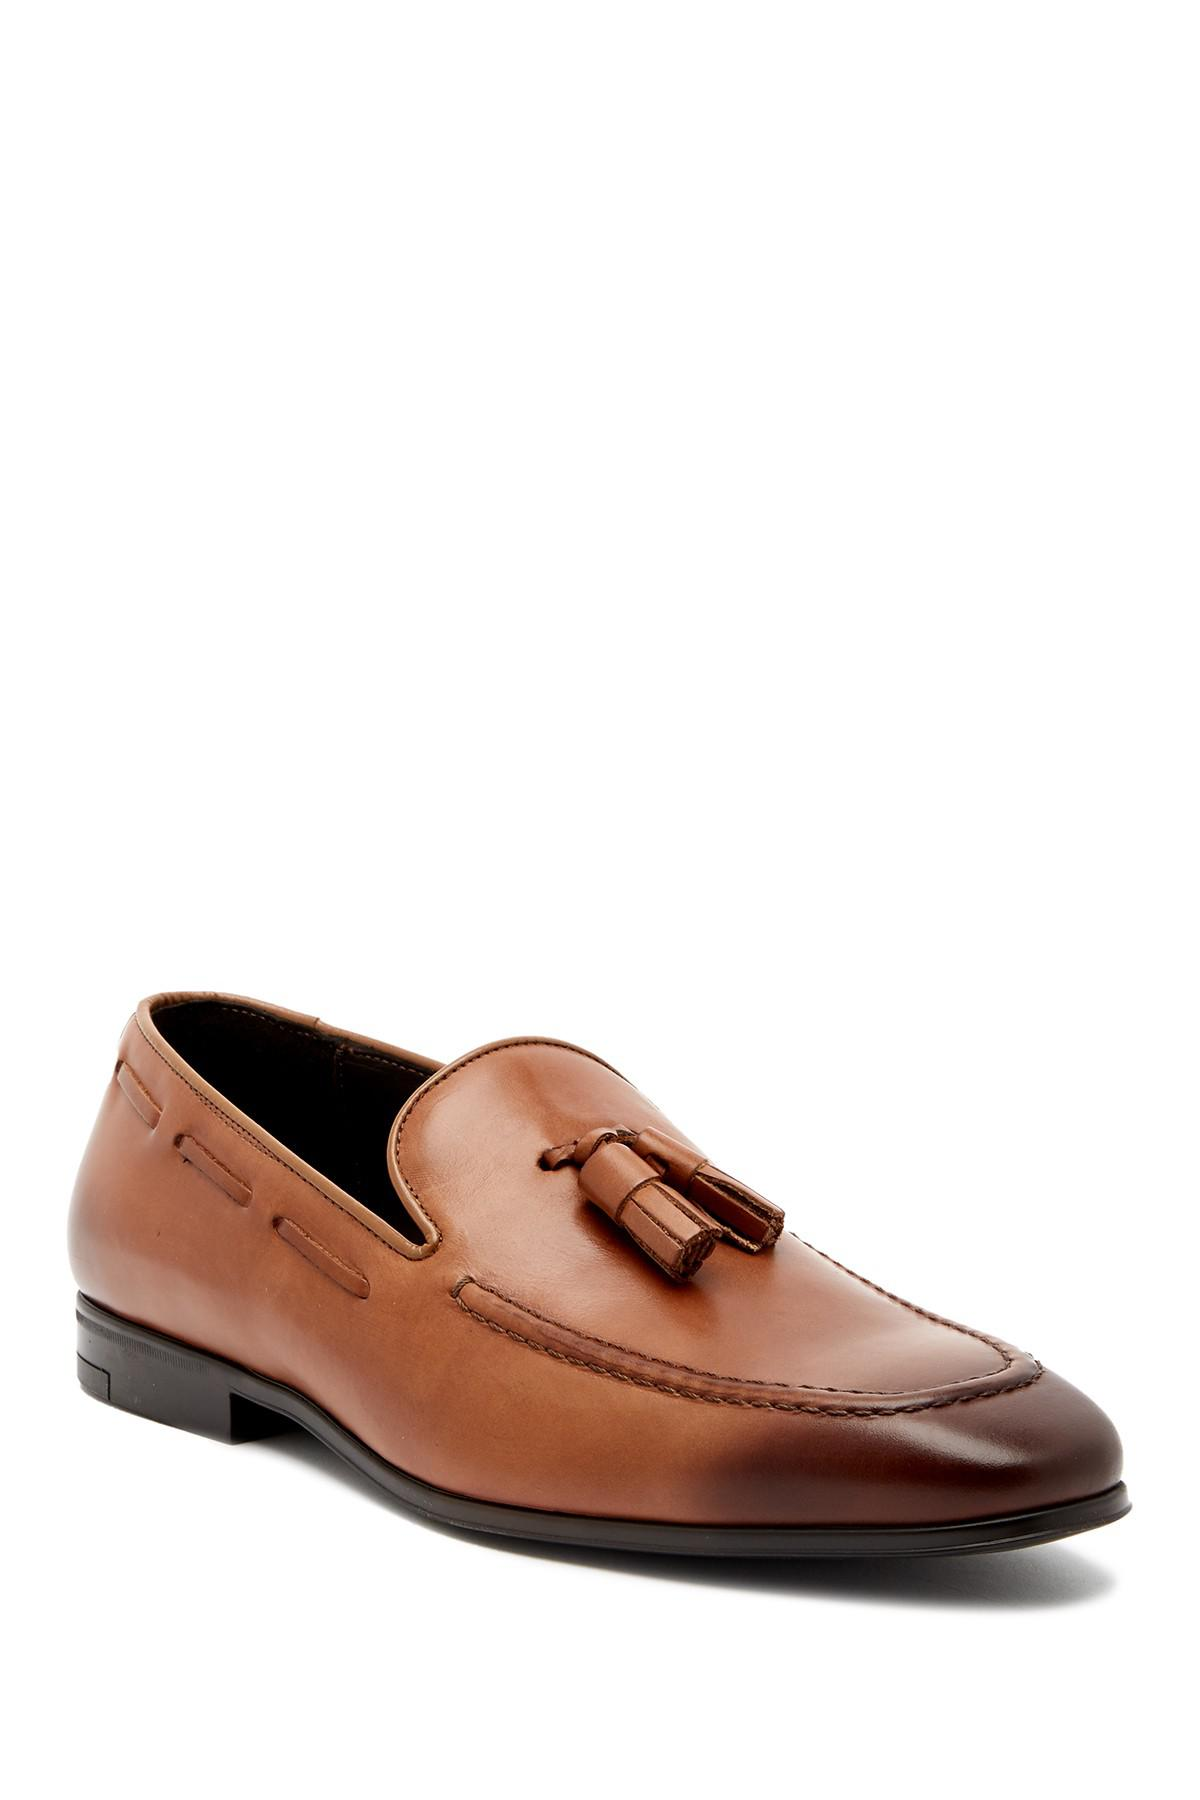 Bruno Magli Ryan Leather Loafer 8wIkoVED